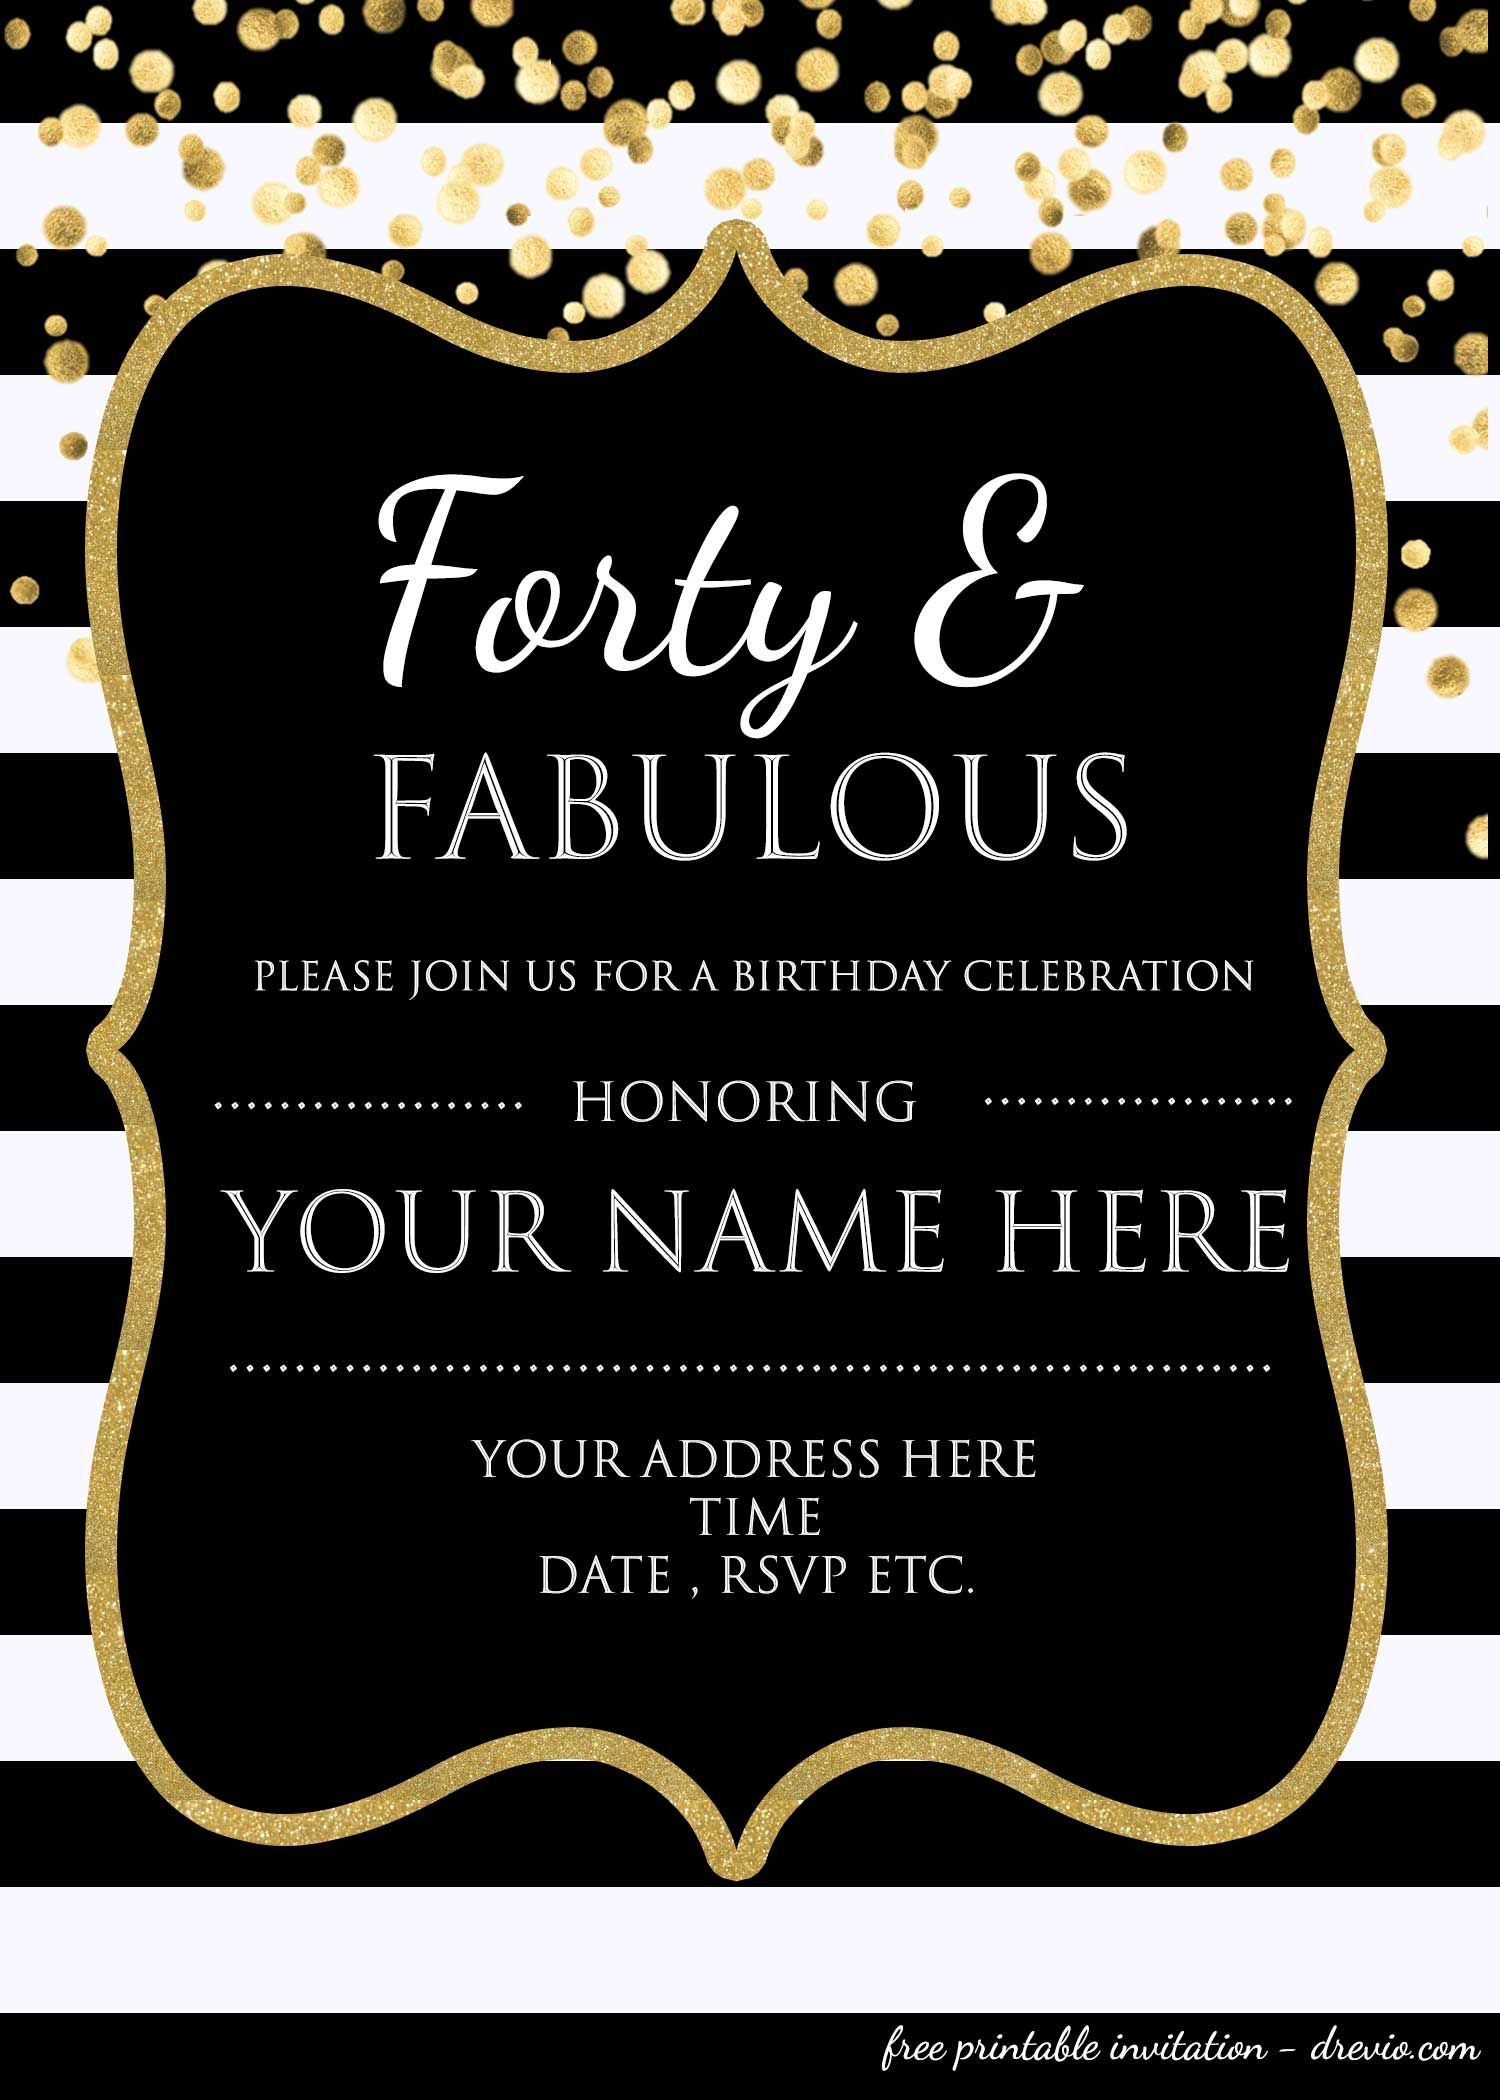 Forty Fabulous 40th Birthday Invitation Template Psd Editable 50th Birthday Party Invitations Party Invite Template 40th Birthday Party Invites